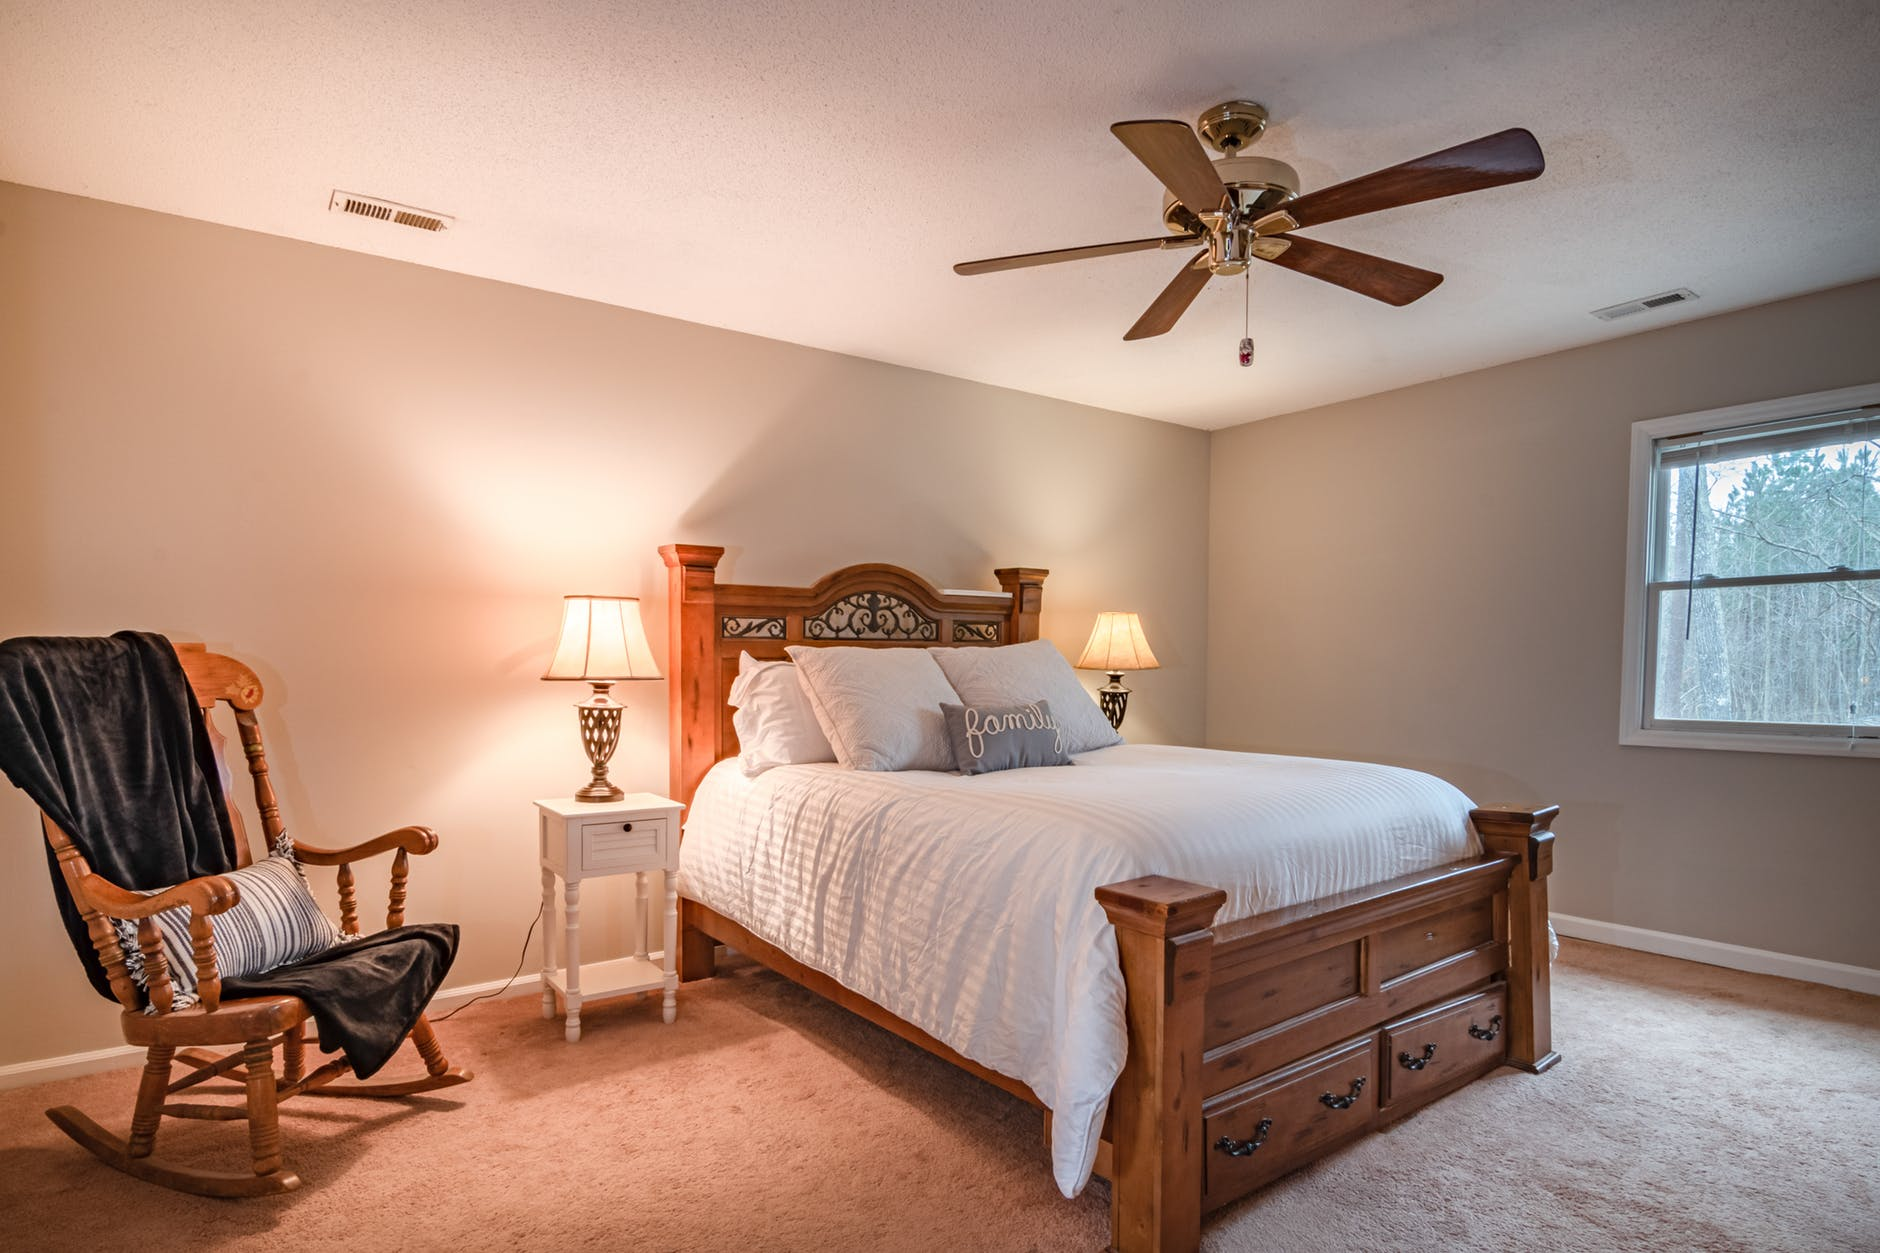 Five things to consider before buying a ceiling fan